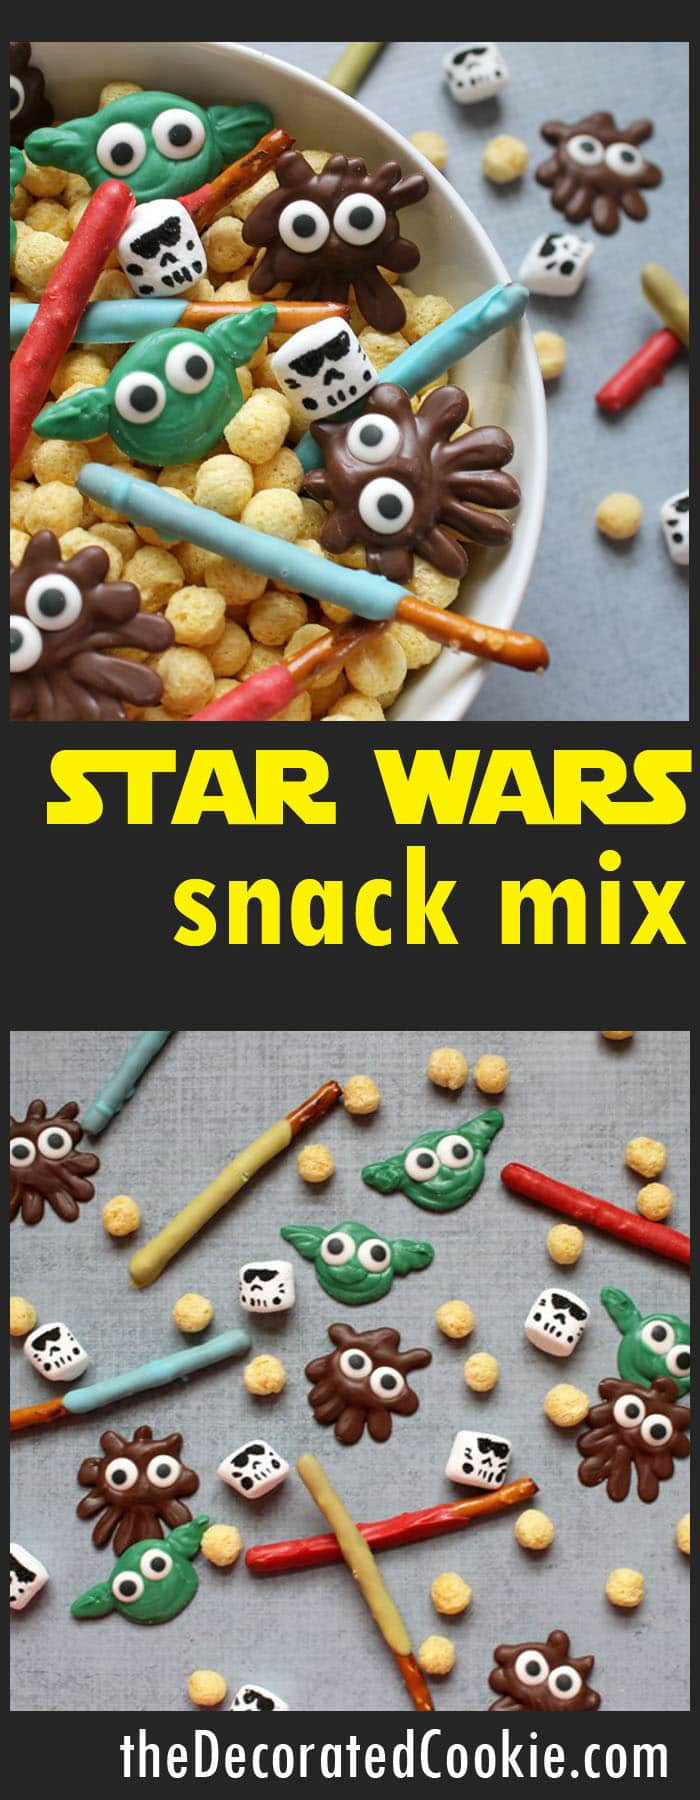 Star Wars snack mix